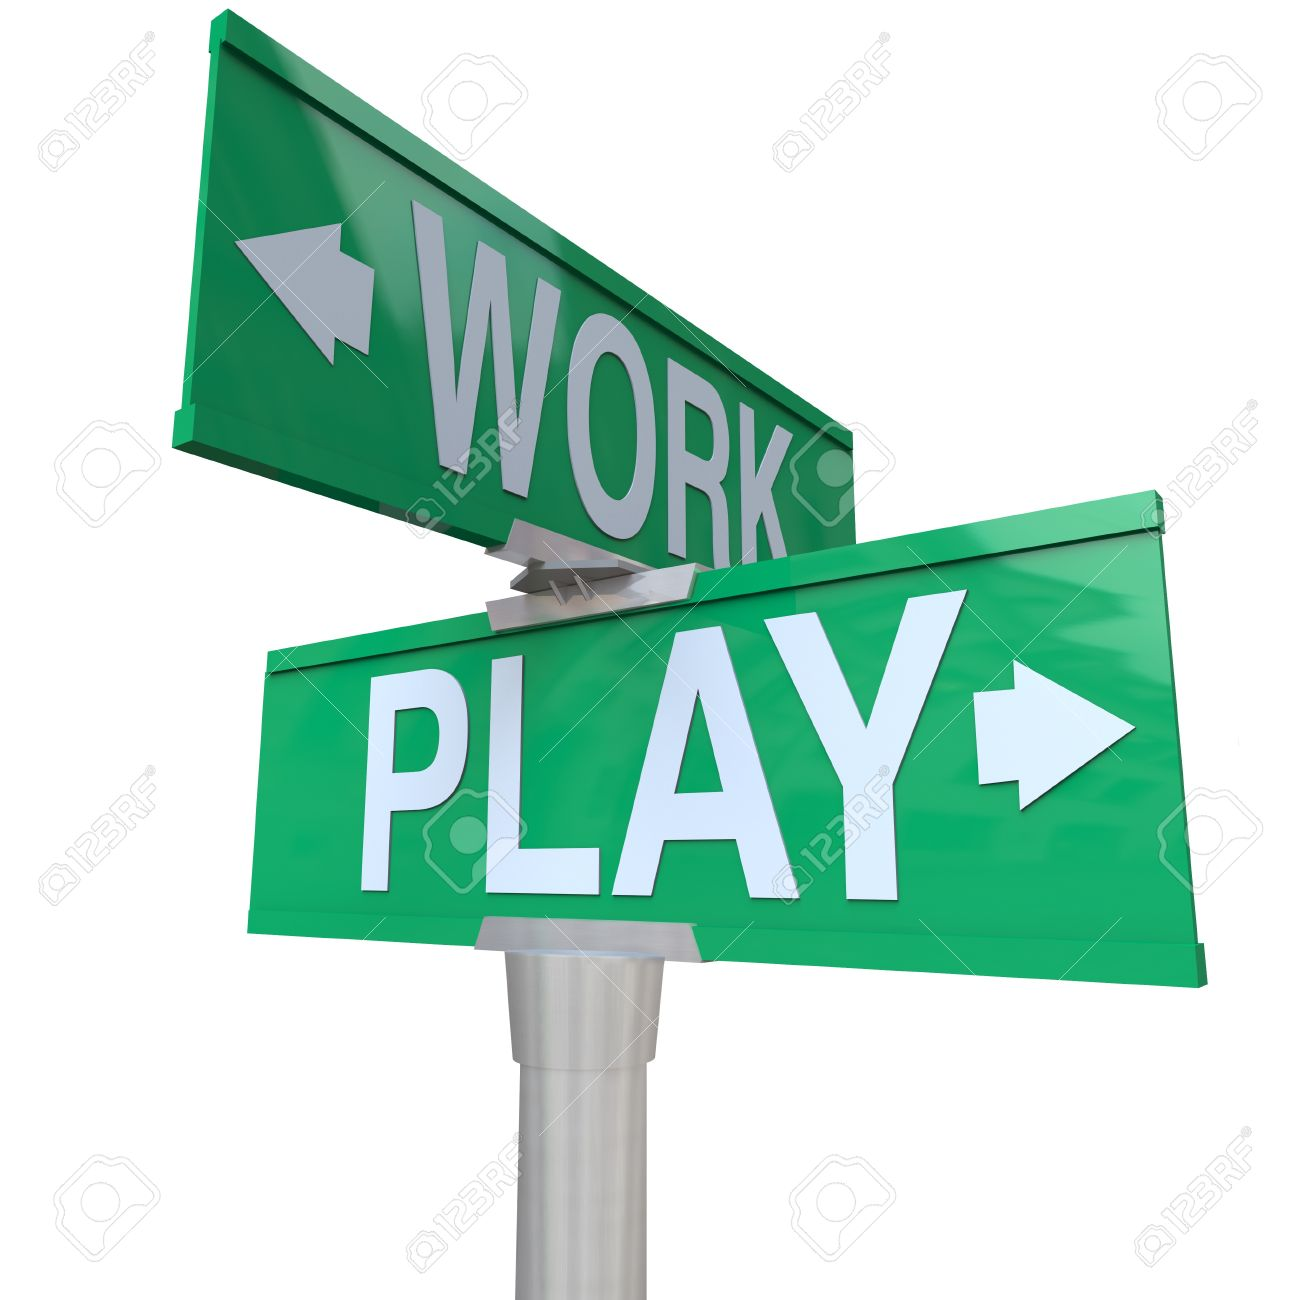 A green two-way street sign pointing to Work and Play reminding you to balance your life between career and relaxation through fun activities such as entertainment and vacation Stock Photo - 15252743